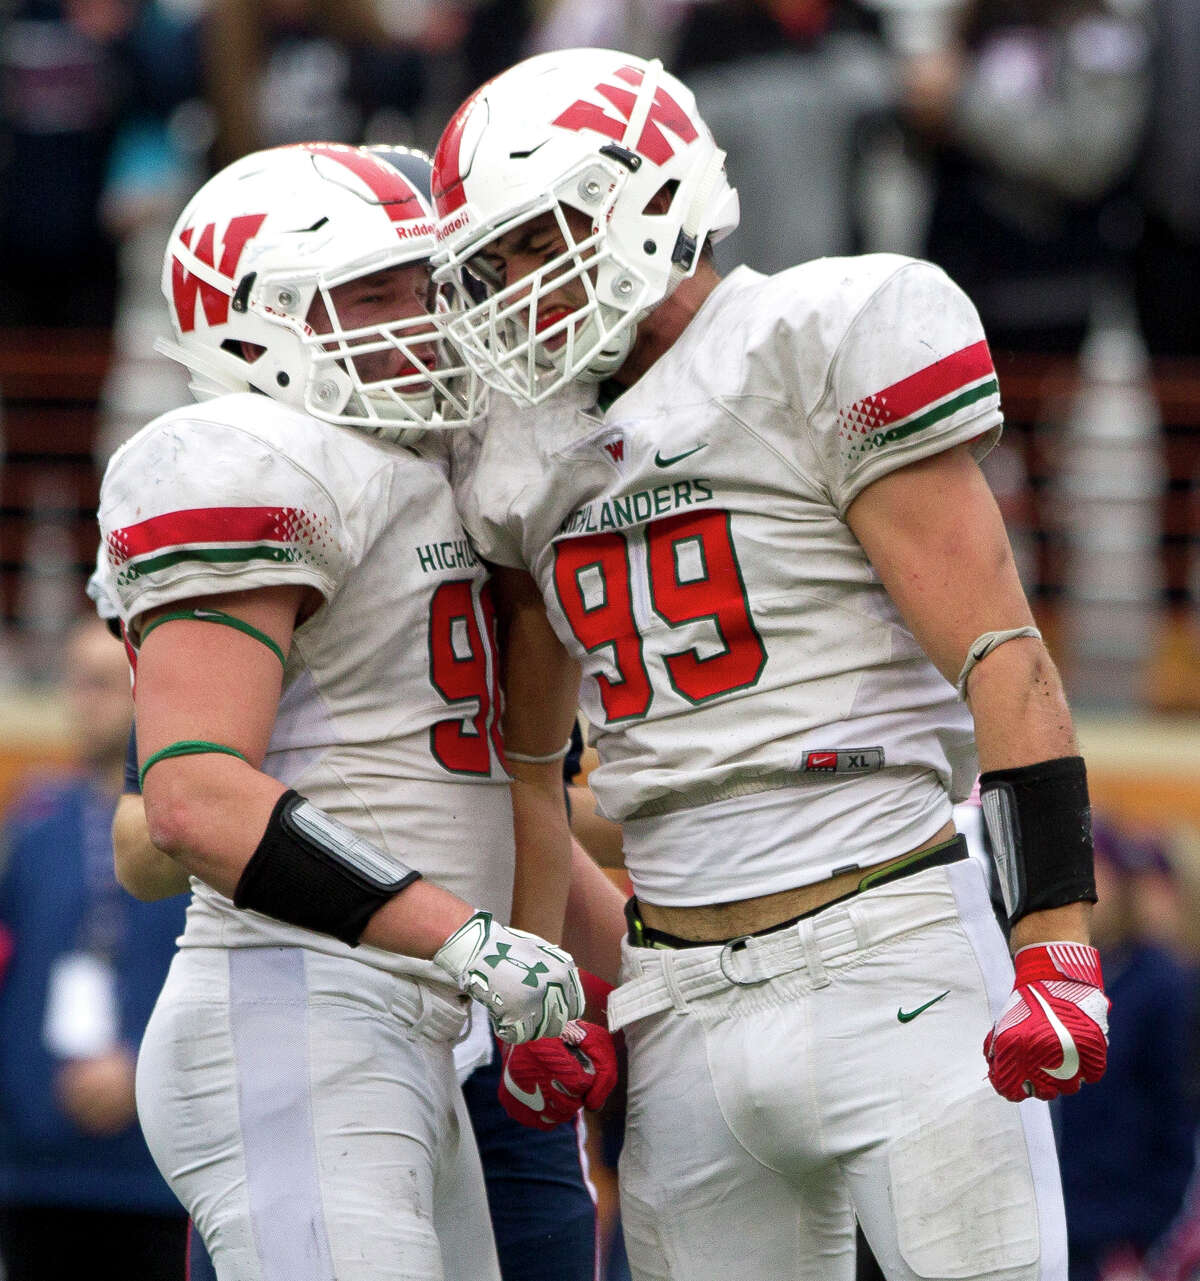 The Woodlands defensive linemen Michael Purcell (99) celebrates with defensive linemen Zachary Loane (90) after sacking Allen quarterback Mitchell Jonke (2) for the second time in three plays during the fourth quarter of a Class 6A Division I state semifinal game at Darrell K Royal-Texas Memorial Stadium Saturday, Dec. 10, 2016, in Austin. Purcell finished the game 2.5 sacks, three tackles for loss, six overall tackles and a pass breakup.